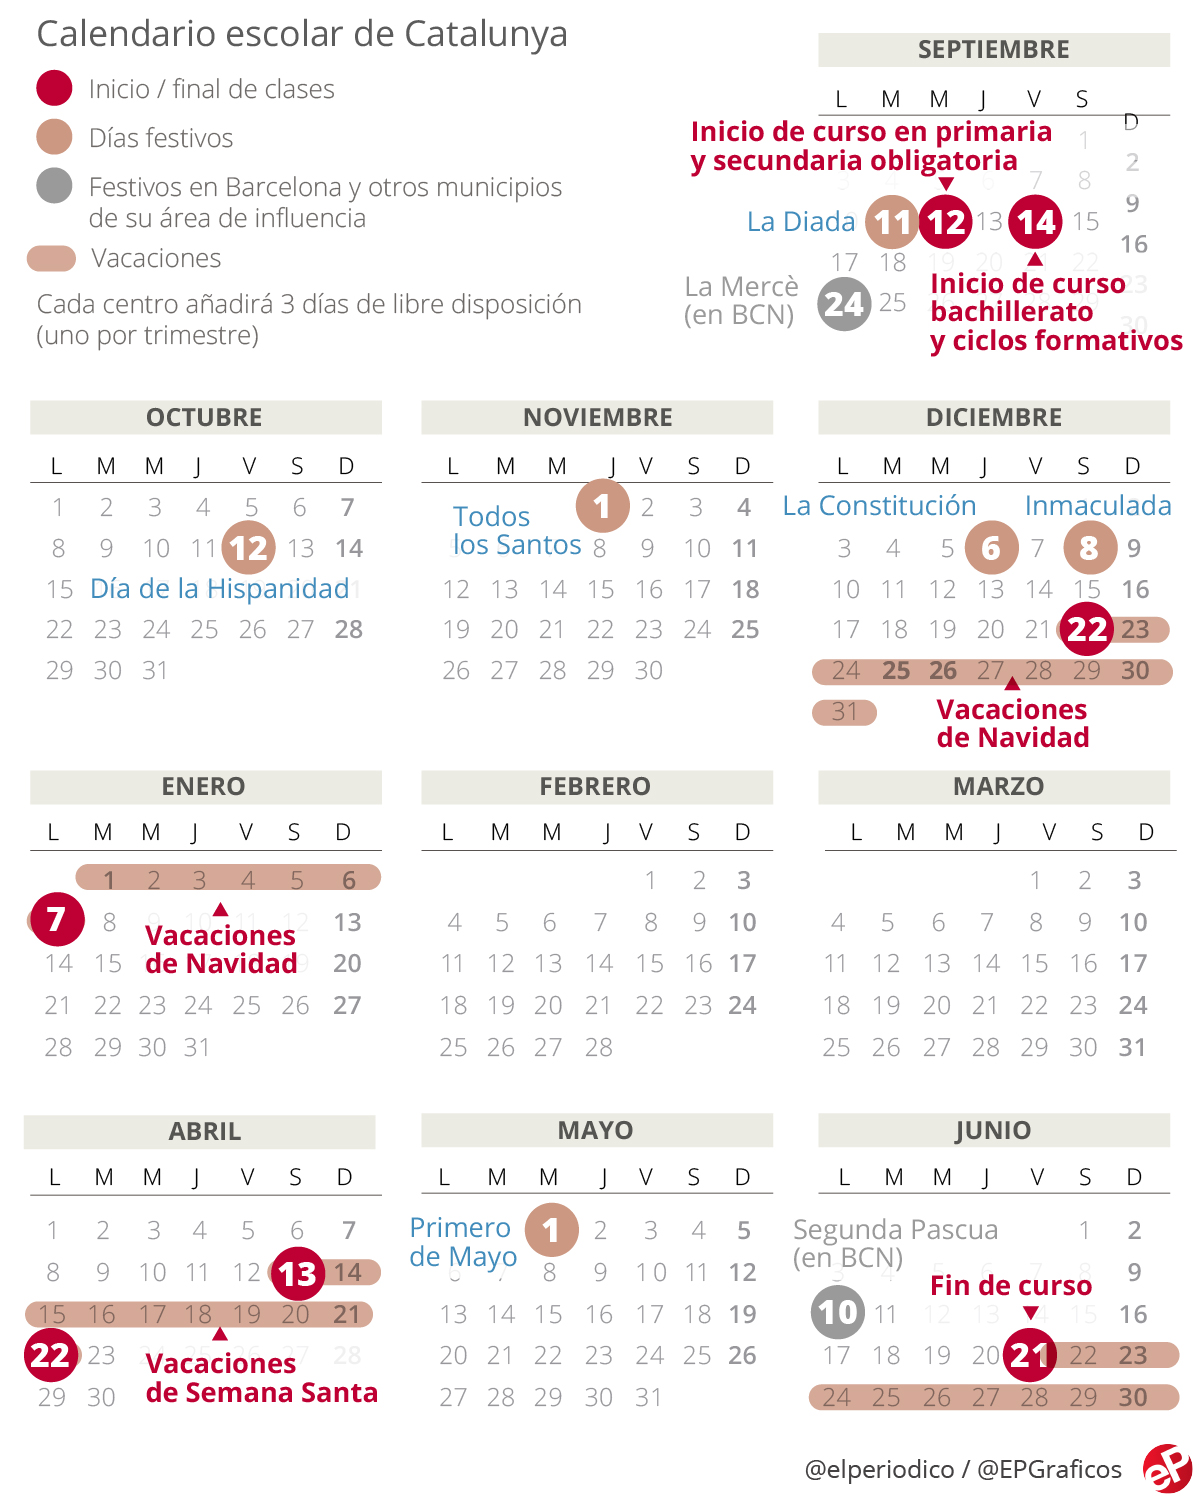 Calendario Escolar Madrid 2020 2019.Calendario Escolar De Catalunya 2018 2019